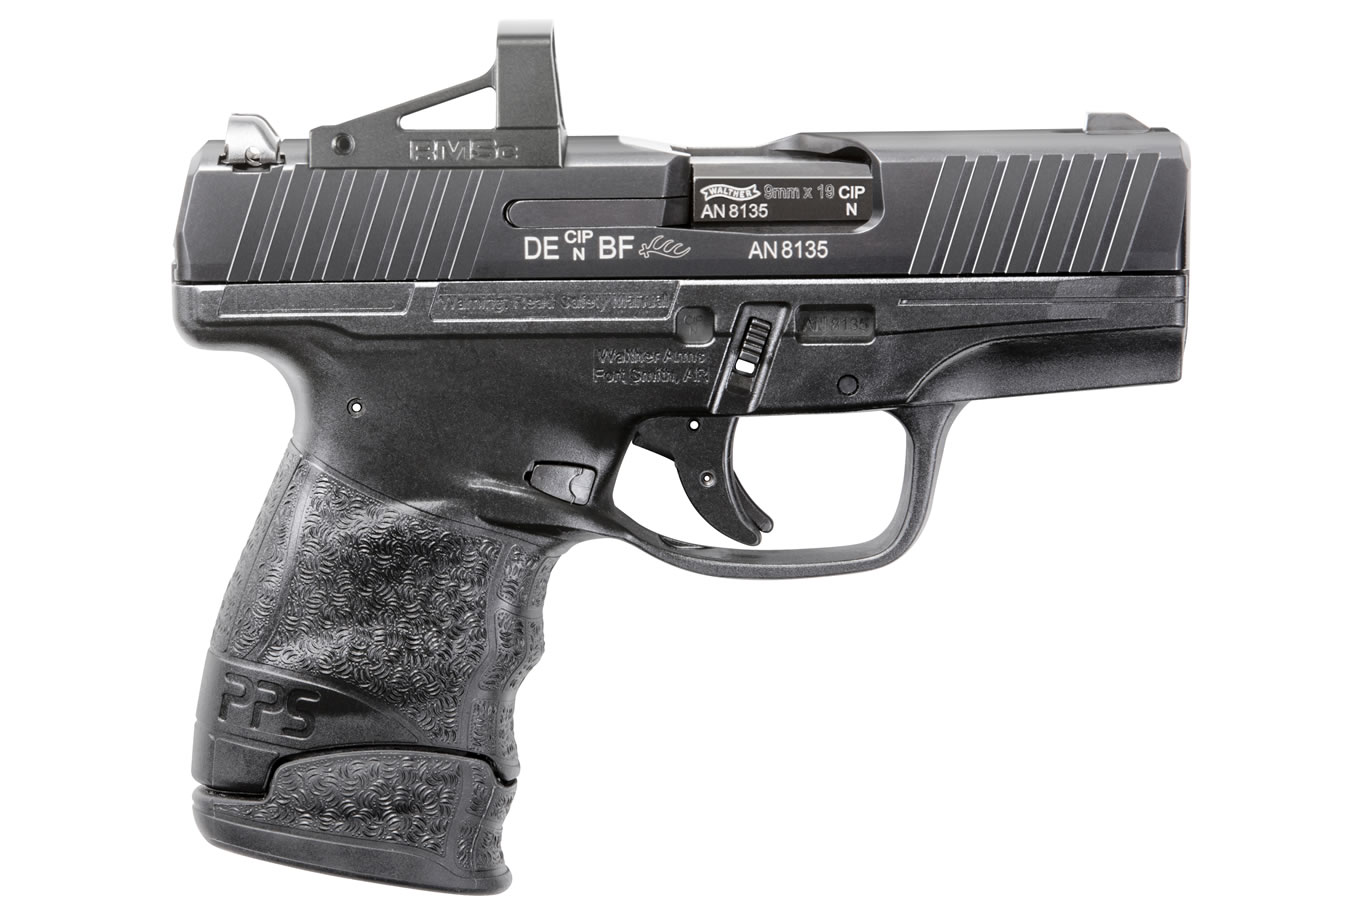 PPS M2 9mm with RMSC Shield Optic